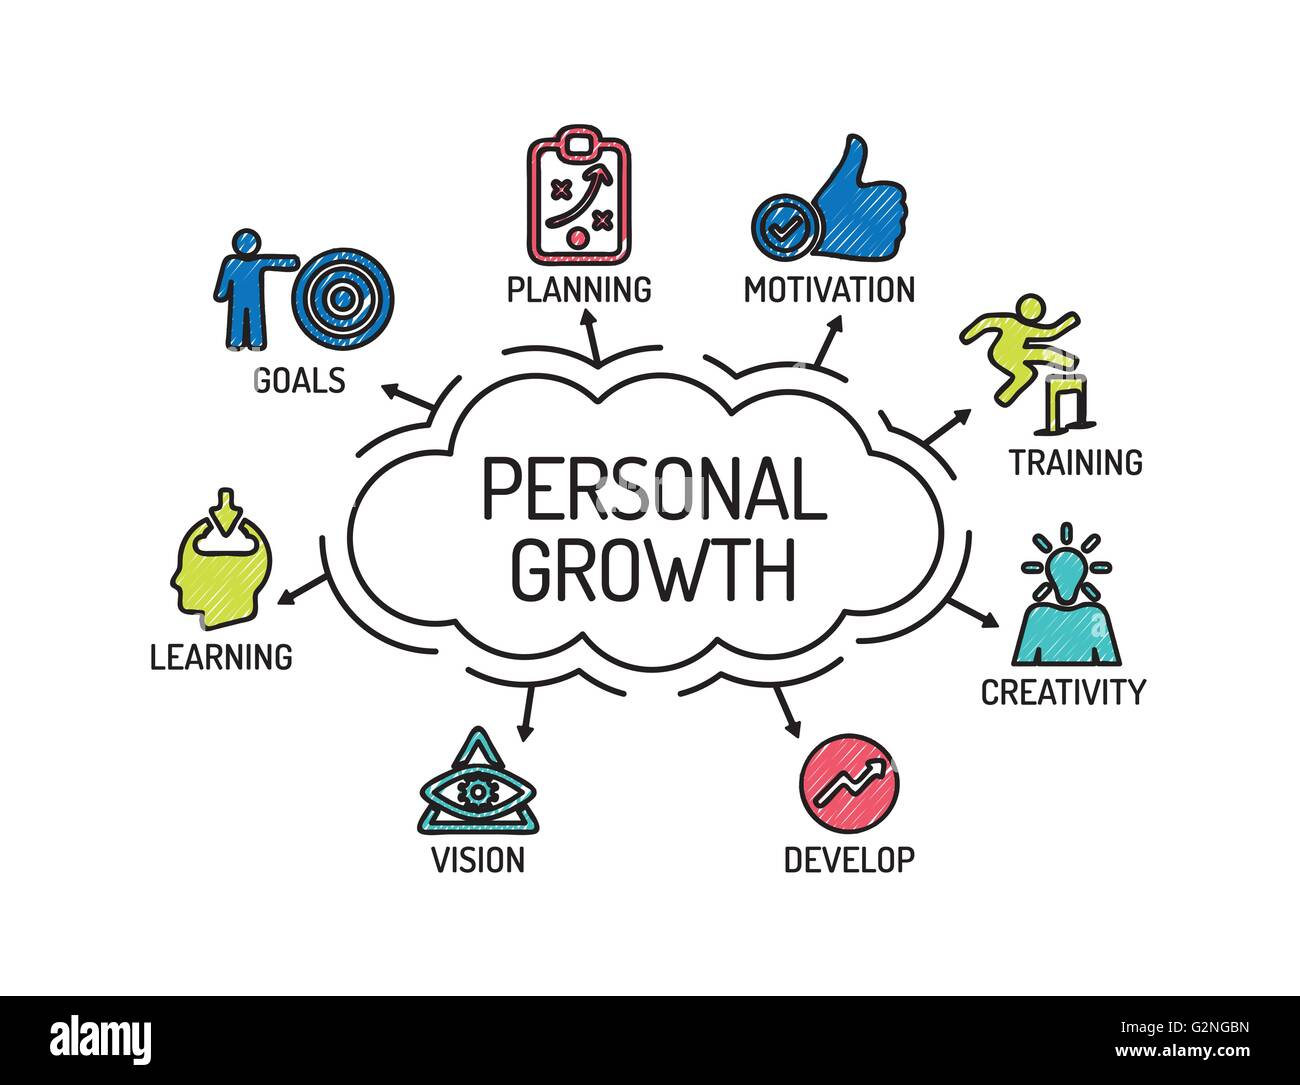 personal growth Personal development covers activities that improve awareness and identity,  develop talents and potential, build human capital and facilitate employability,.